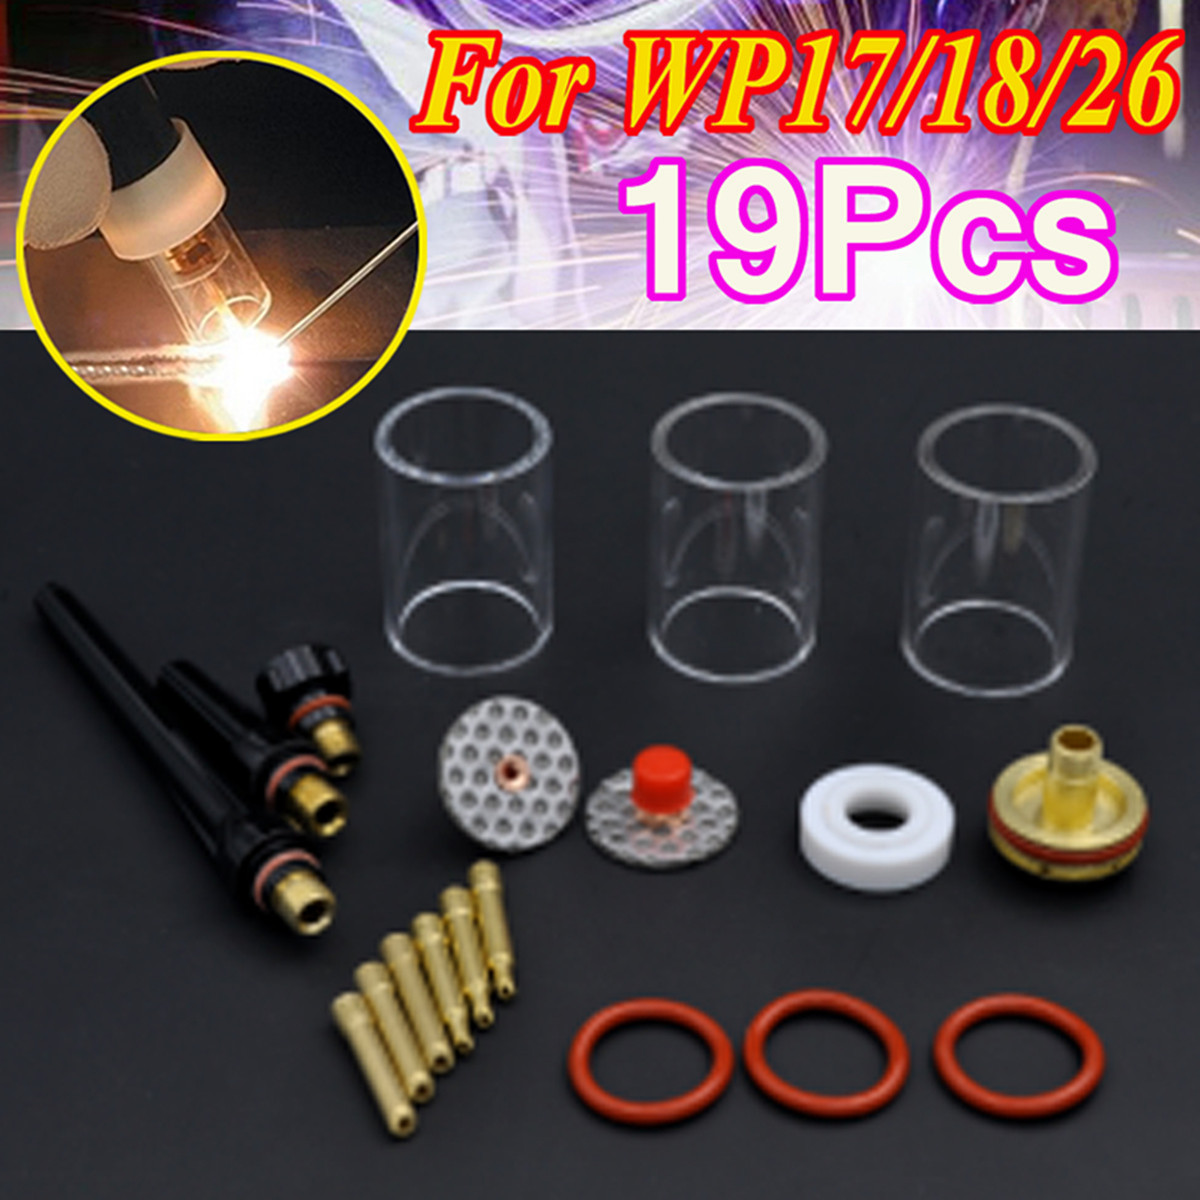 19PCs 1.0mm+2.4mm TIG Welding Torch Kit Tungsten Needle Clip Stubby Collet Body Gas Lens Pyrex Glass Cup for WP-17/18/26 Series 49pcs practical tig welding kit welding torch accessories collet body stubby gas lens 10 pyrex glass cup for wp 17 18 26 mayitr